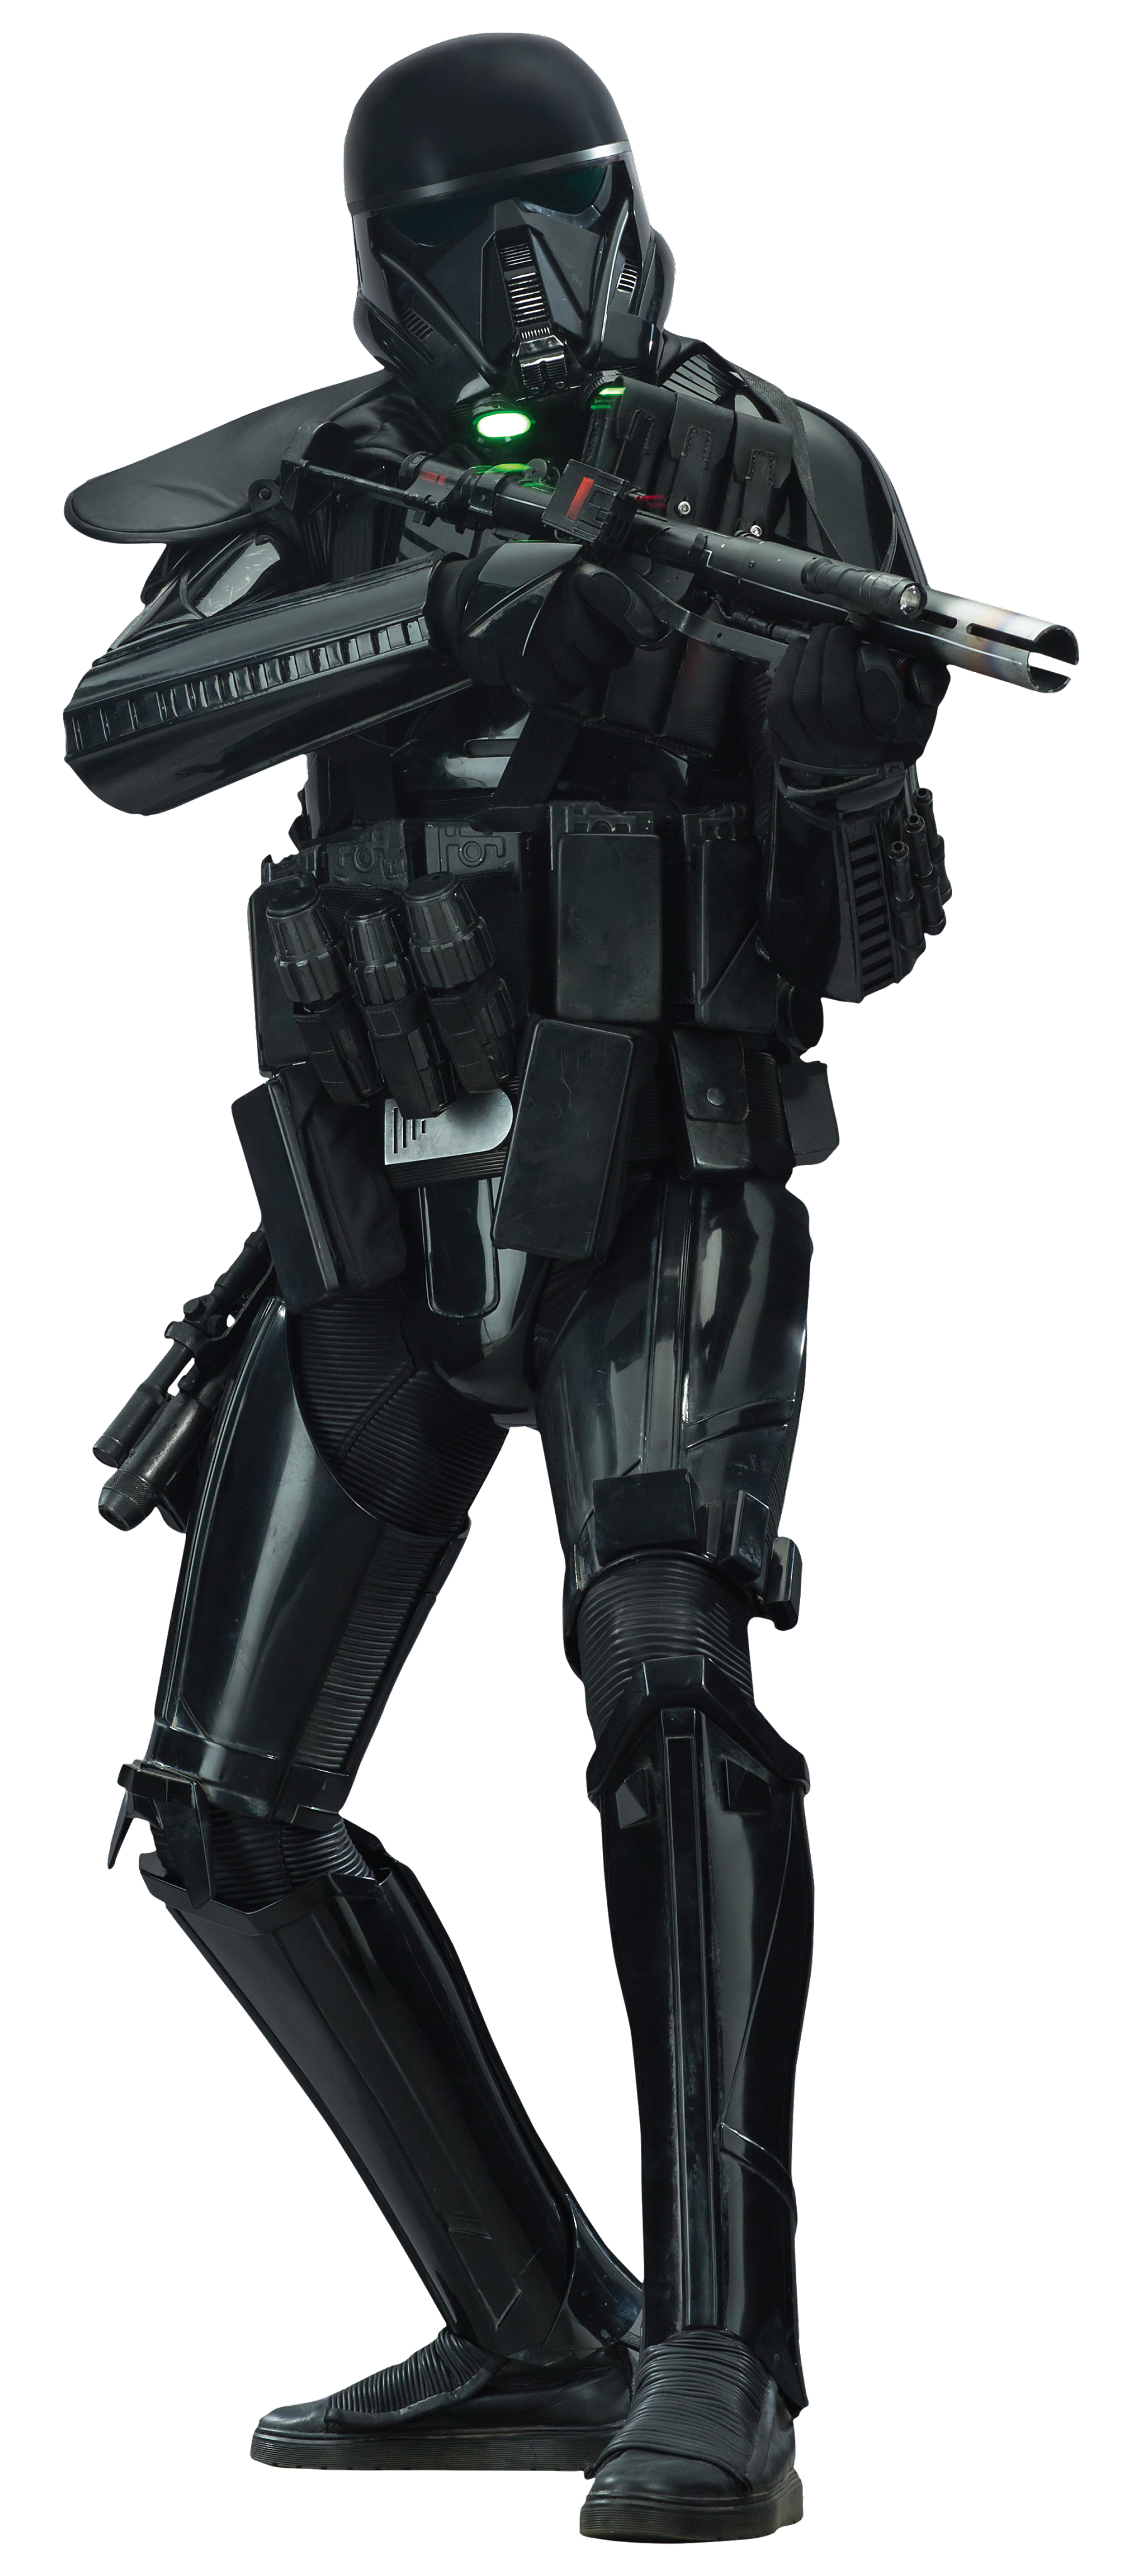 Imperial ground crew star wars empire clipart picture free stock Death trooper | Wookieepedia | FANDOM powered by Wikia picture free stock